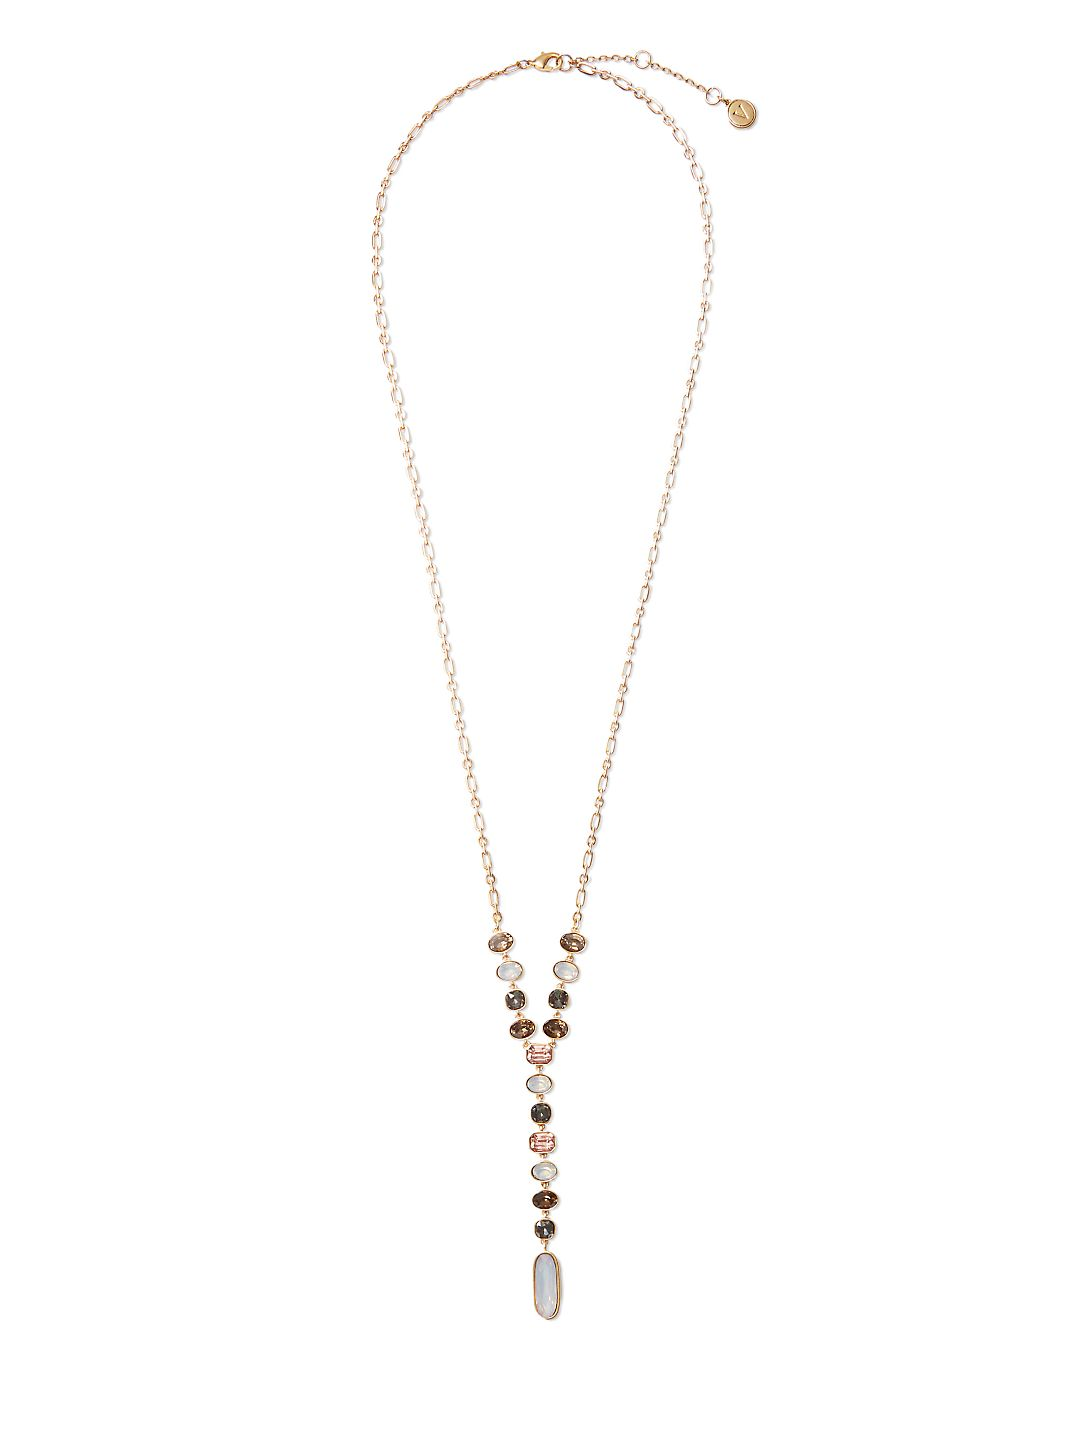 Orient Express Crystal Drama Necklace